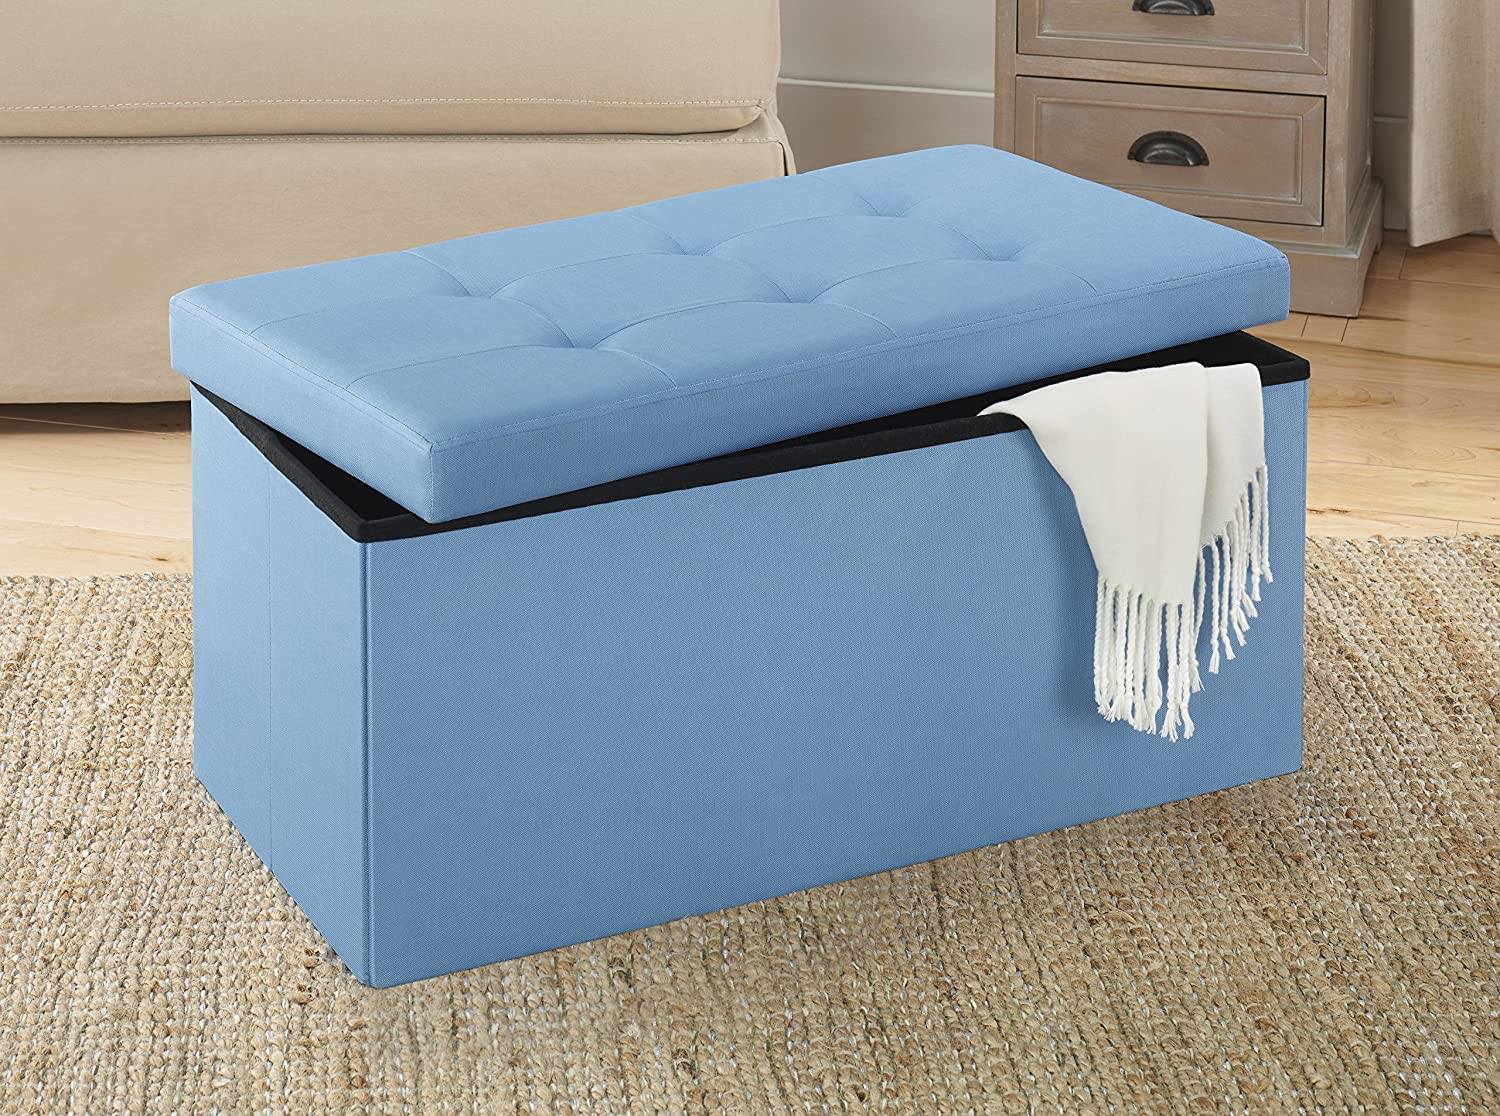 Amazon.com: Whitmor Collapsible Storage Bench-Parisian Blue: Home ...